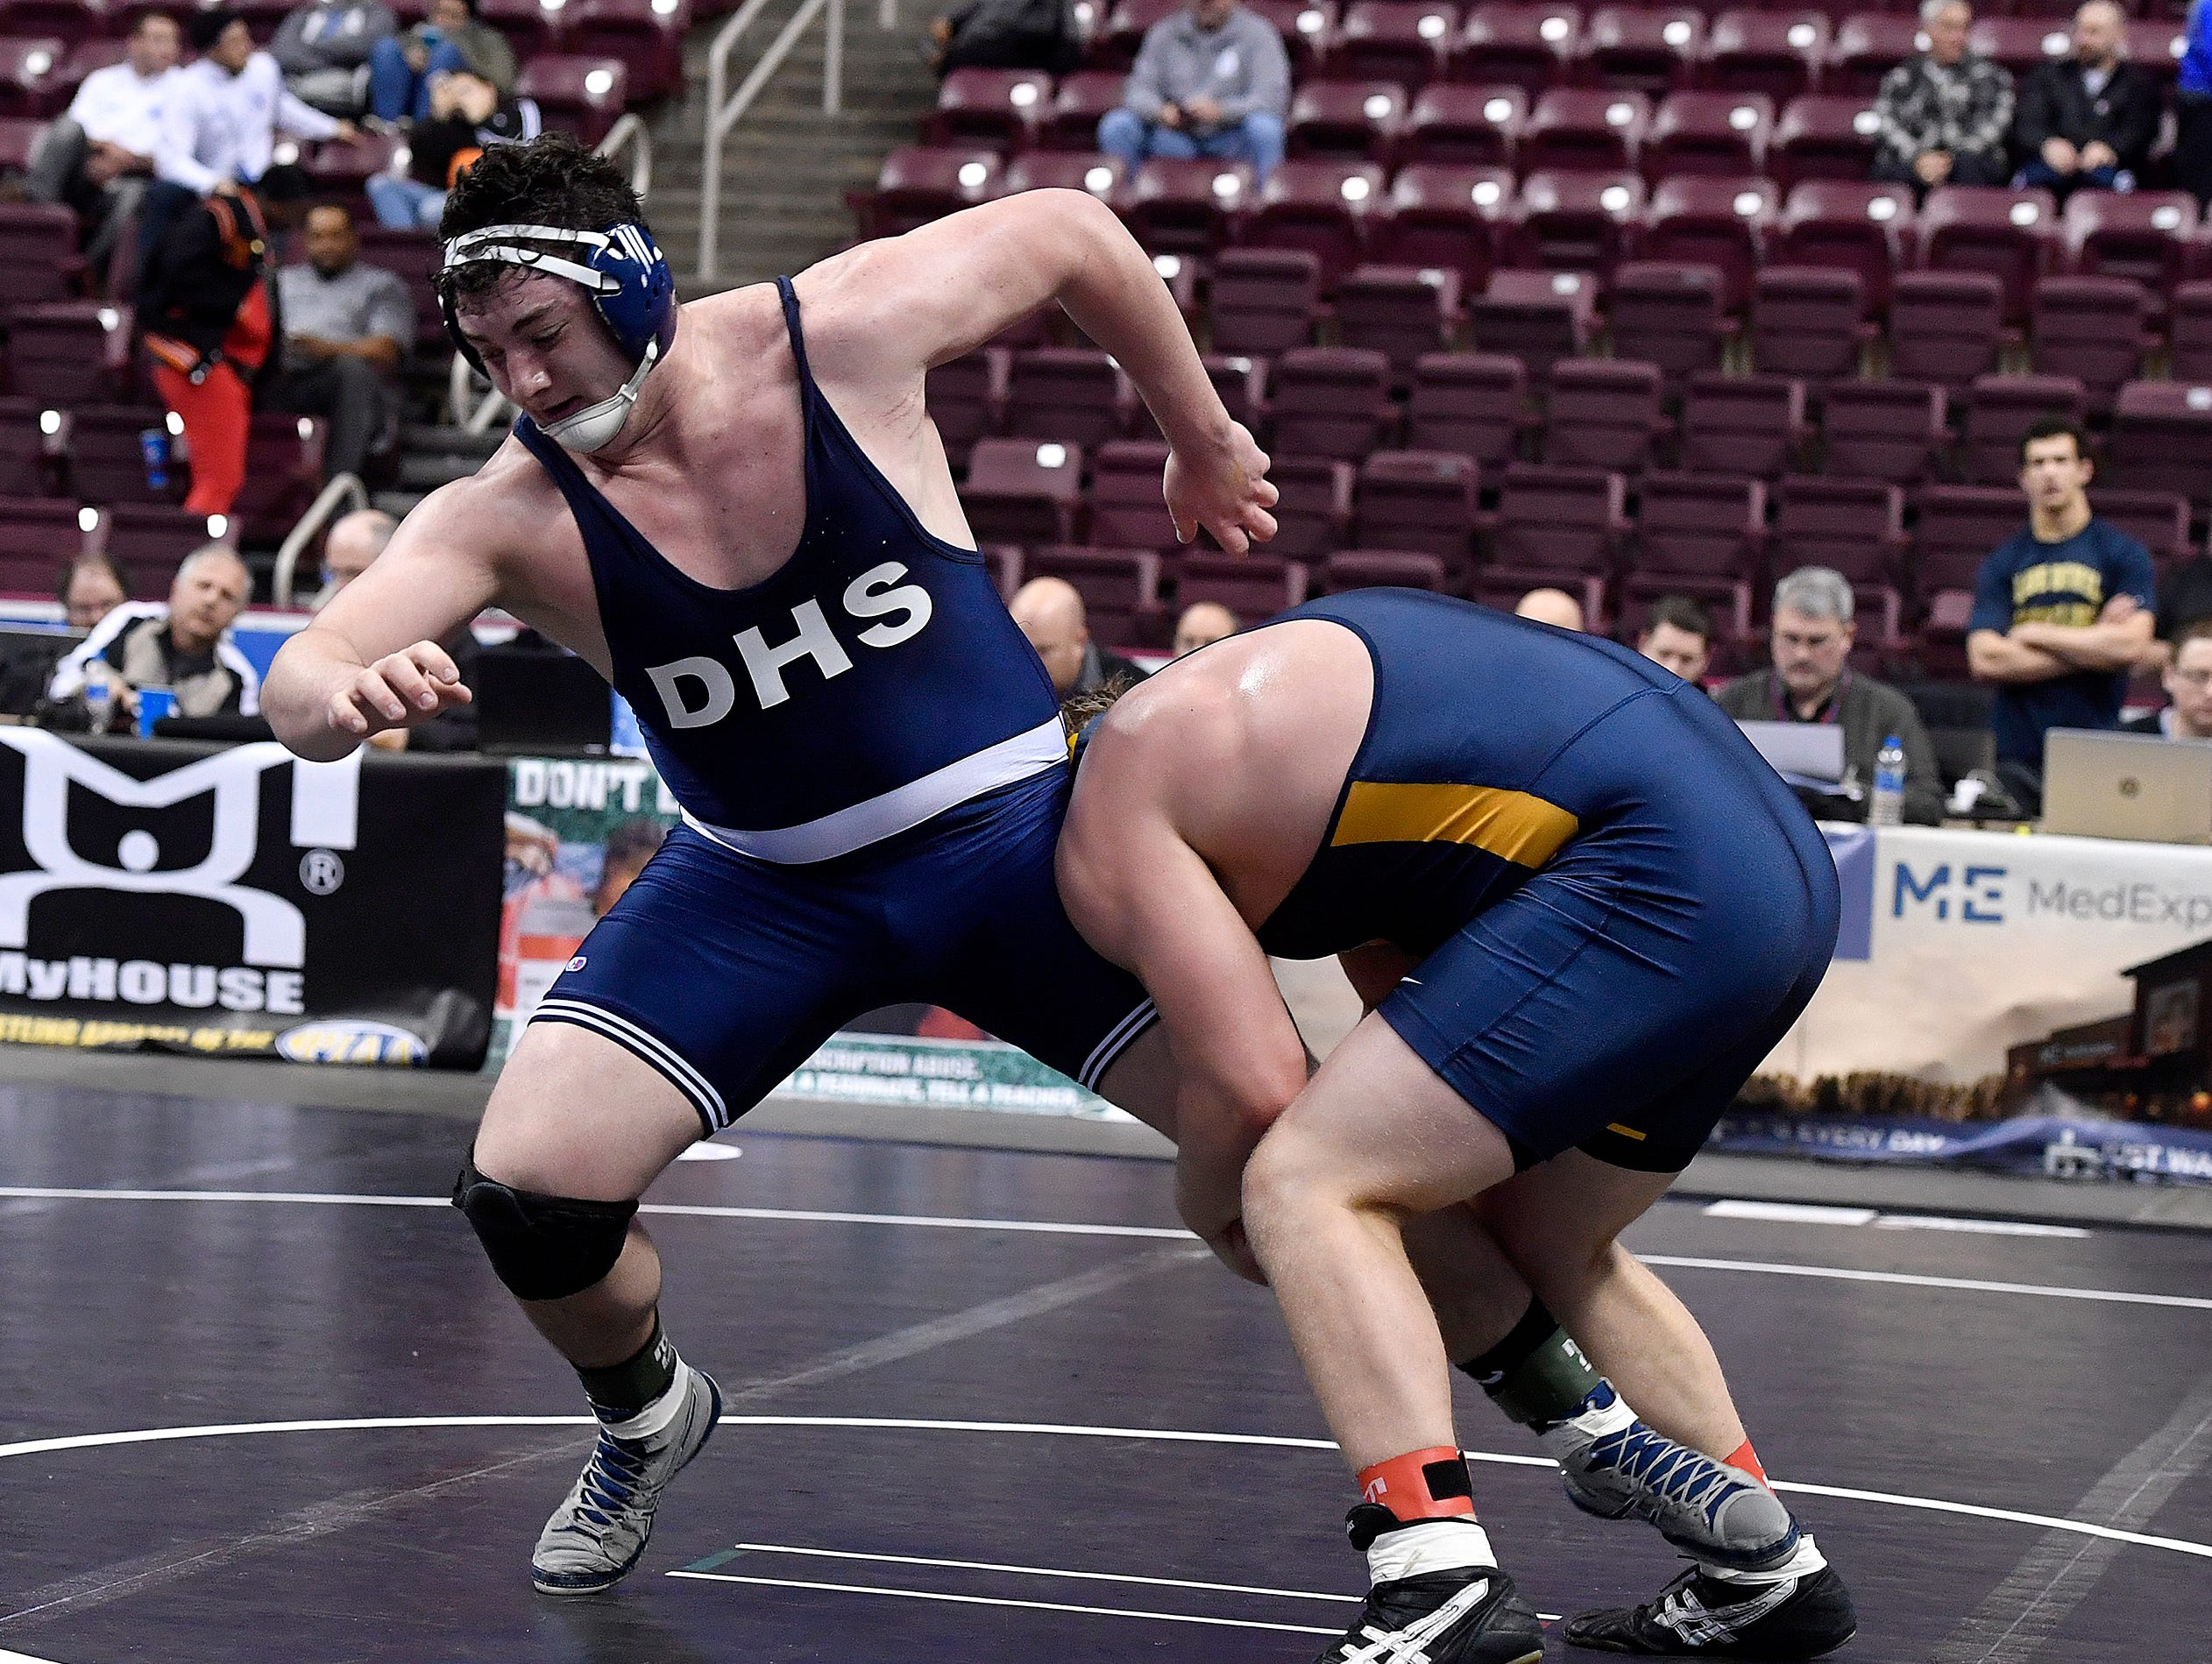 Raymond Christas of Dallastown struggles for an escape  from Nathan Hoaglund of Mt. Lebanon during the PIAA Class 3-A 285 pound first round match, Thursday, March 7, 2019.John A. Pavoncello photo